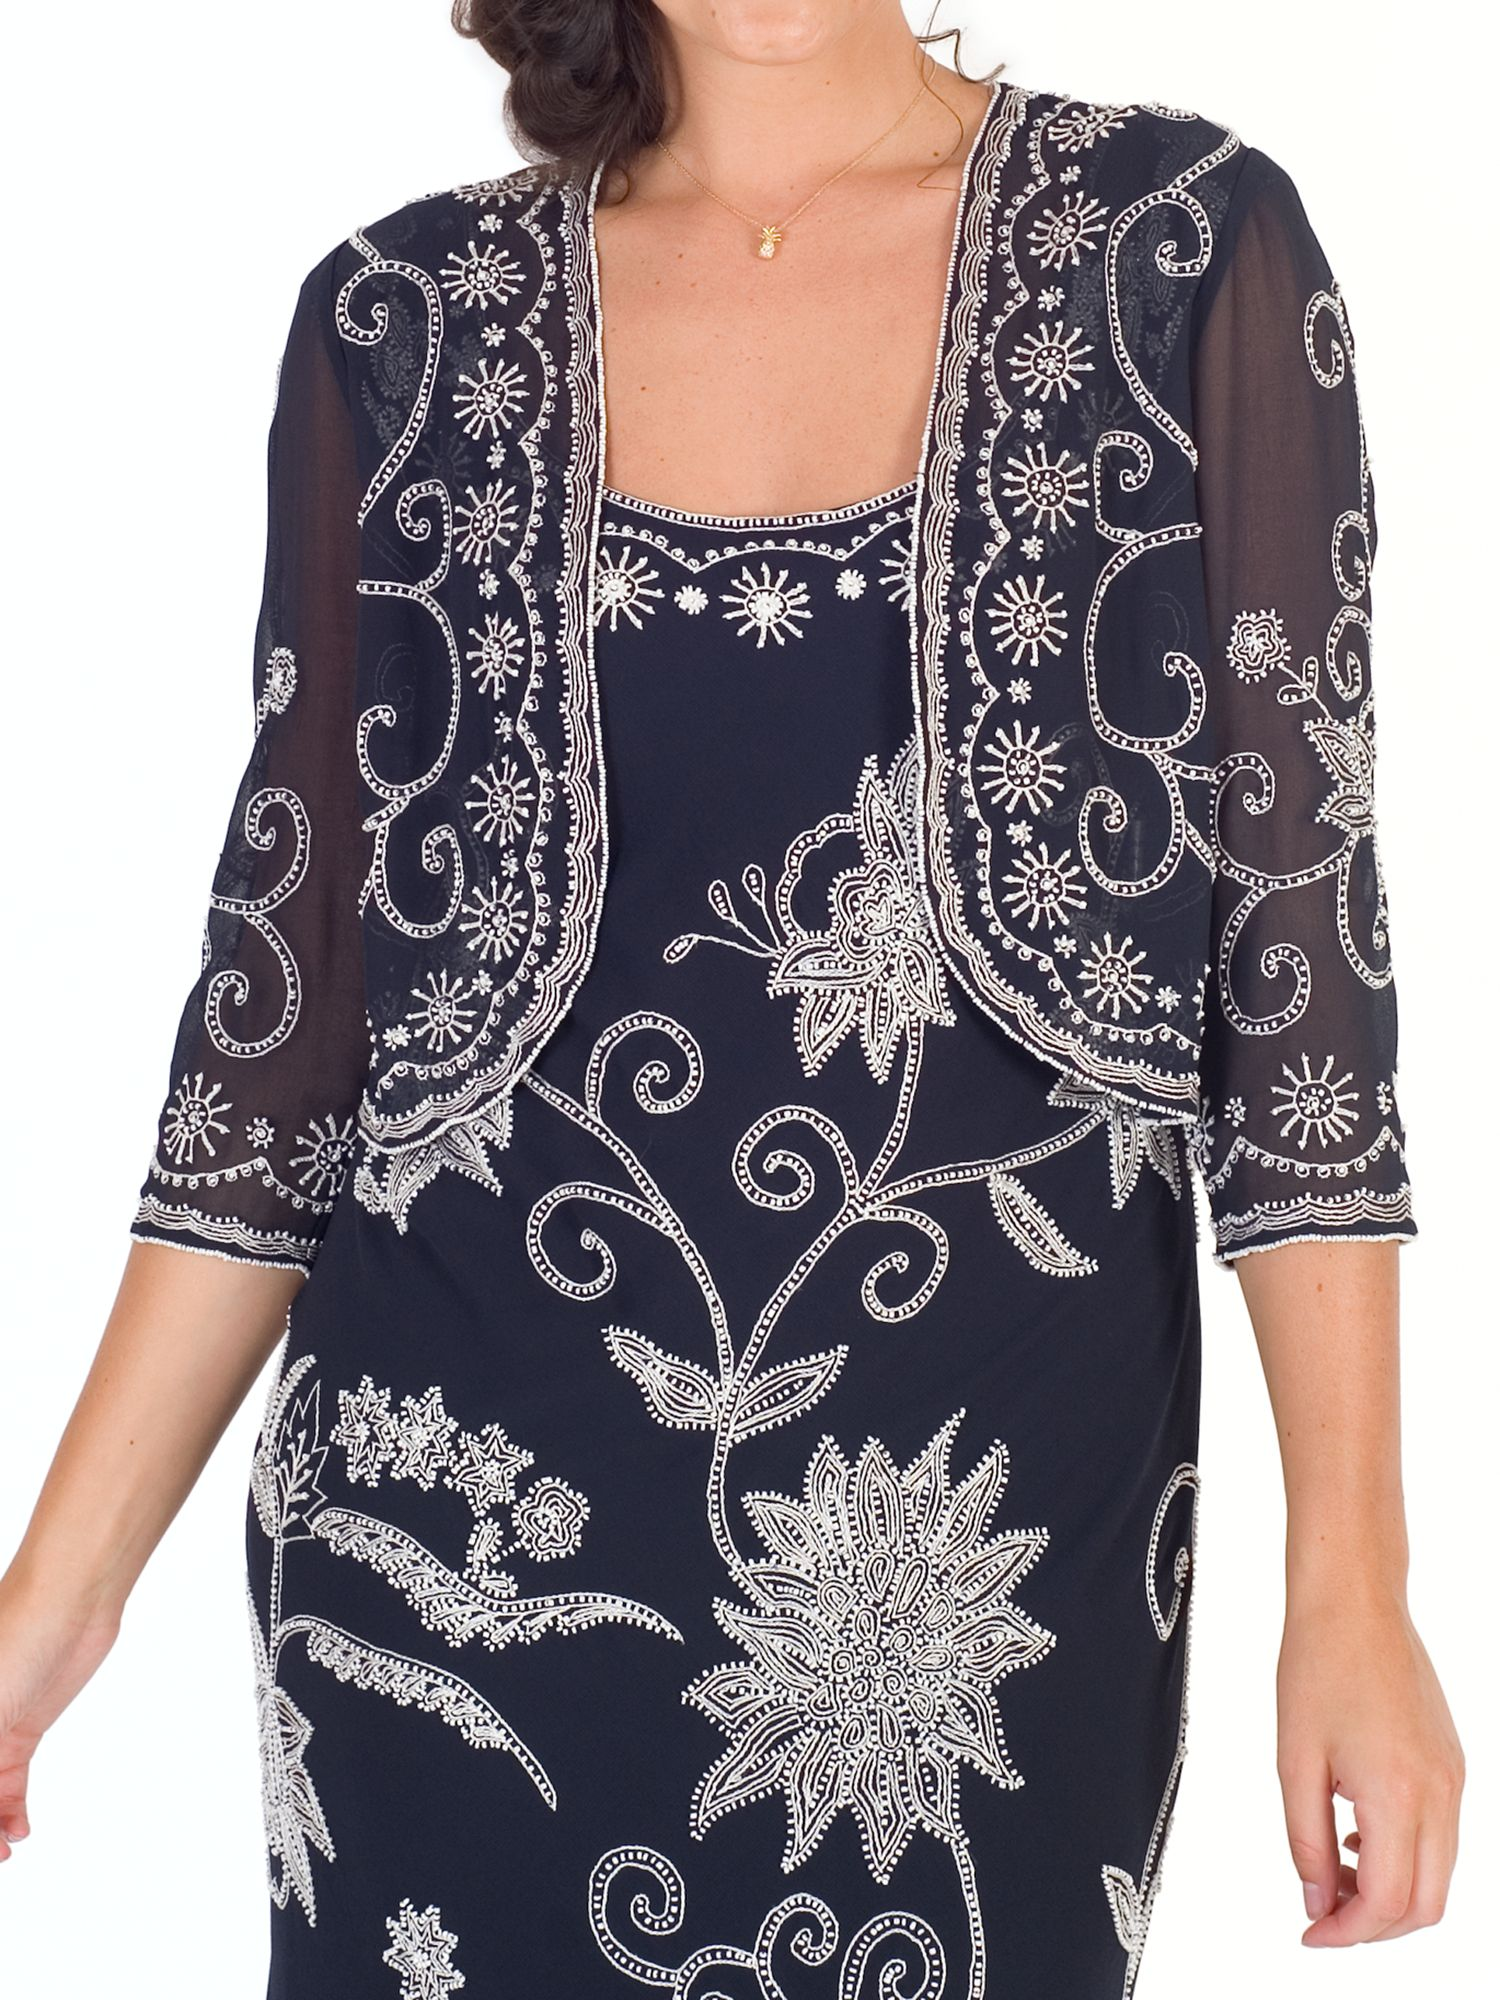 Chesca Chesca Embroidered Beaded Bolero, Navy/Ivory